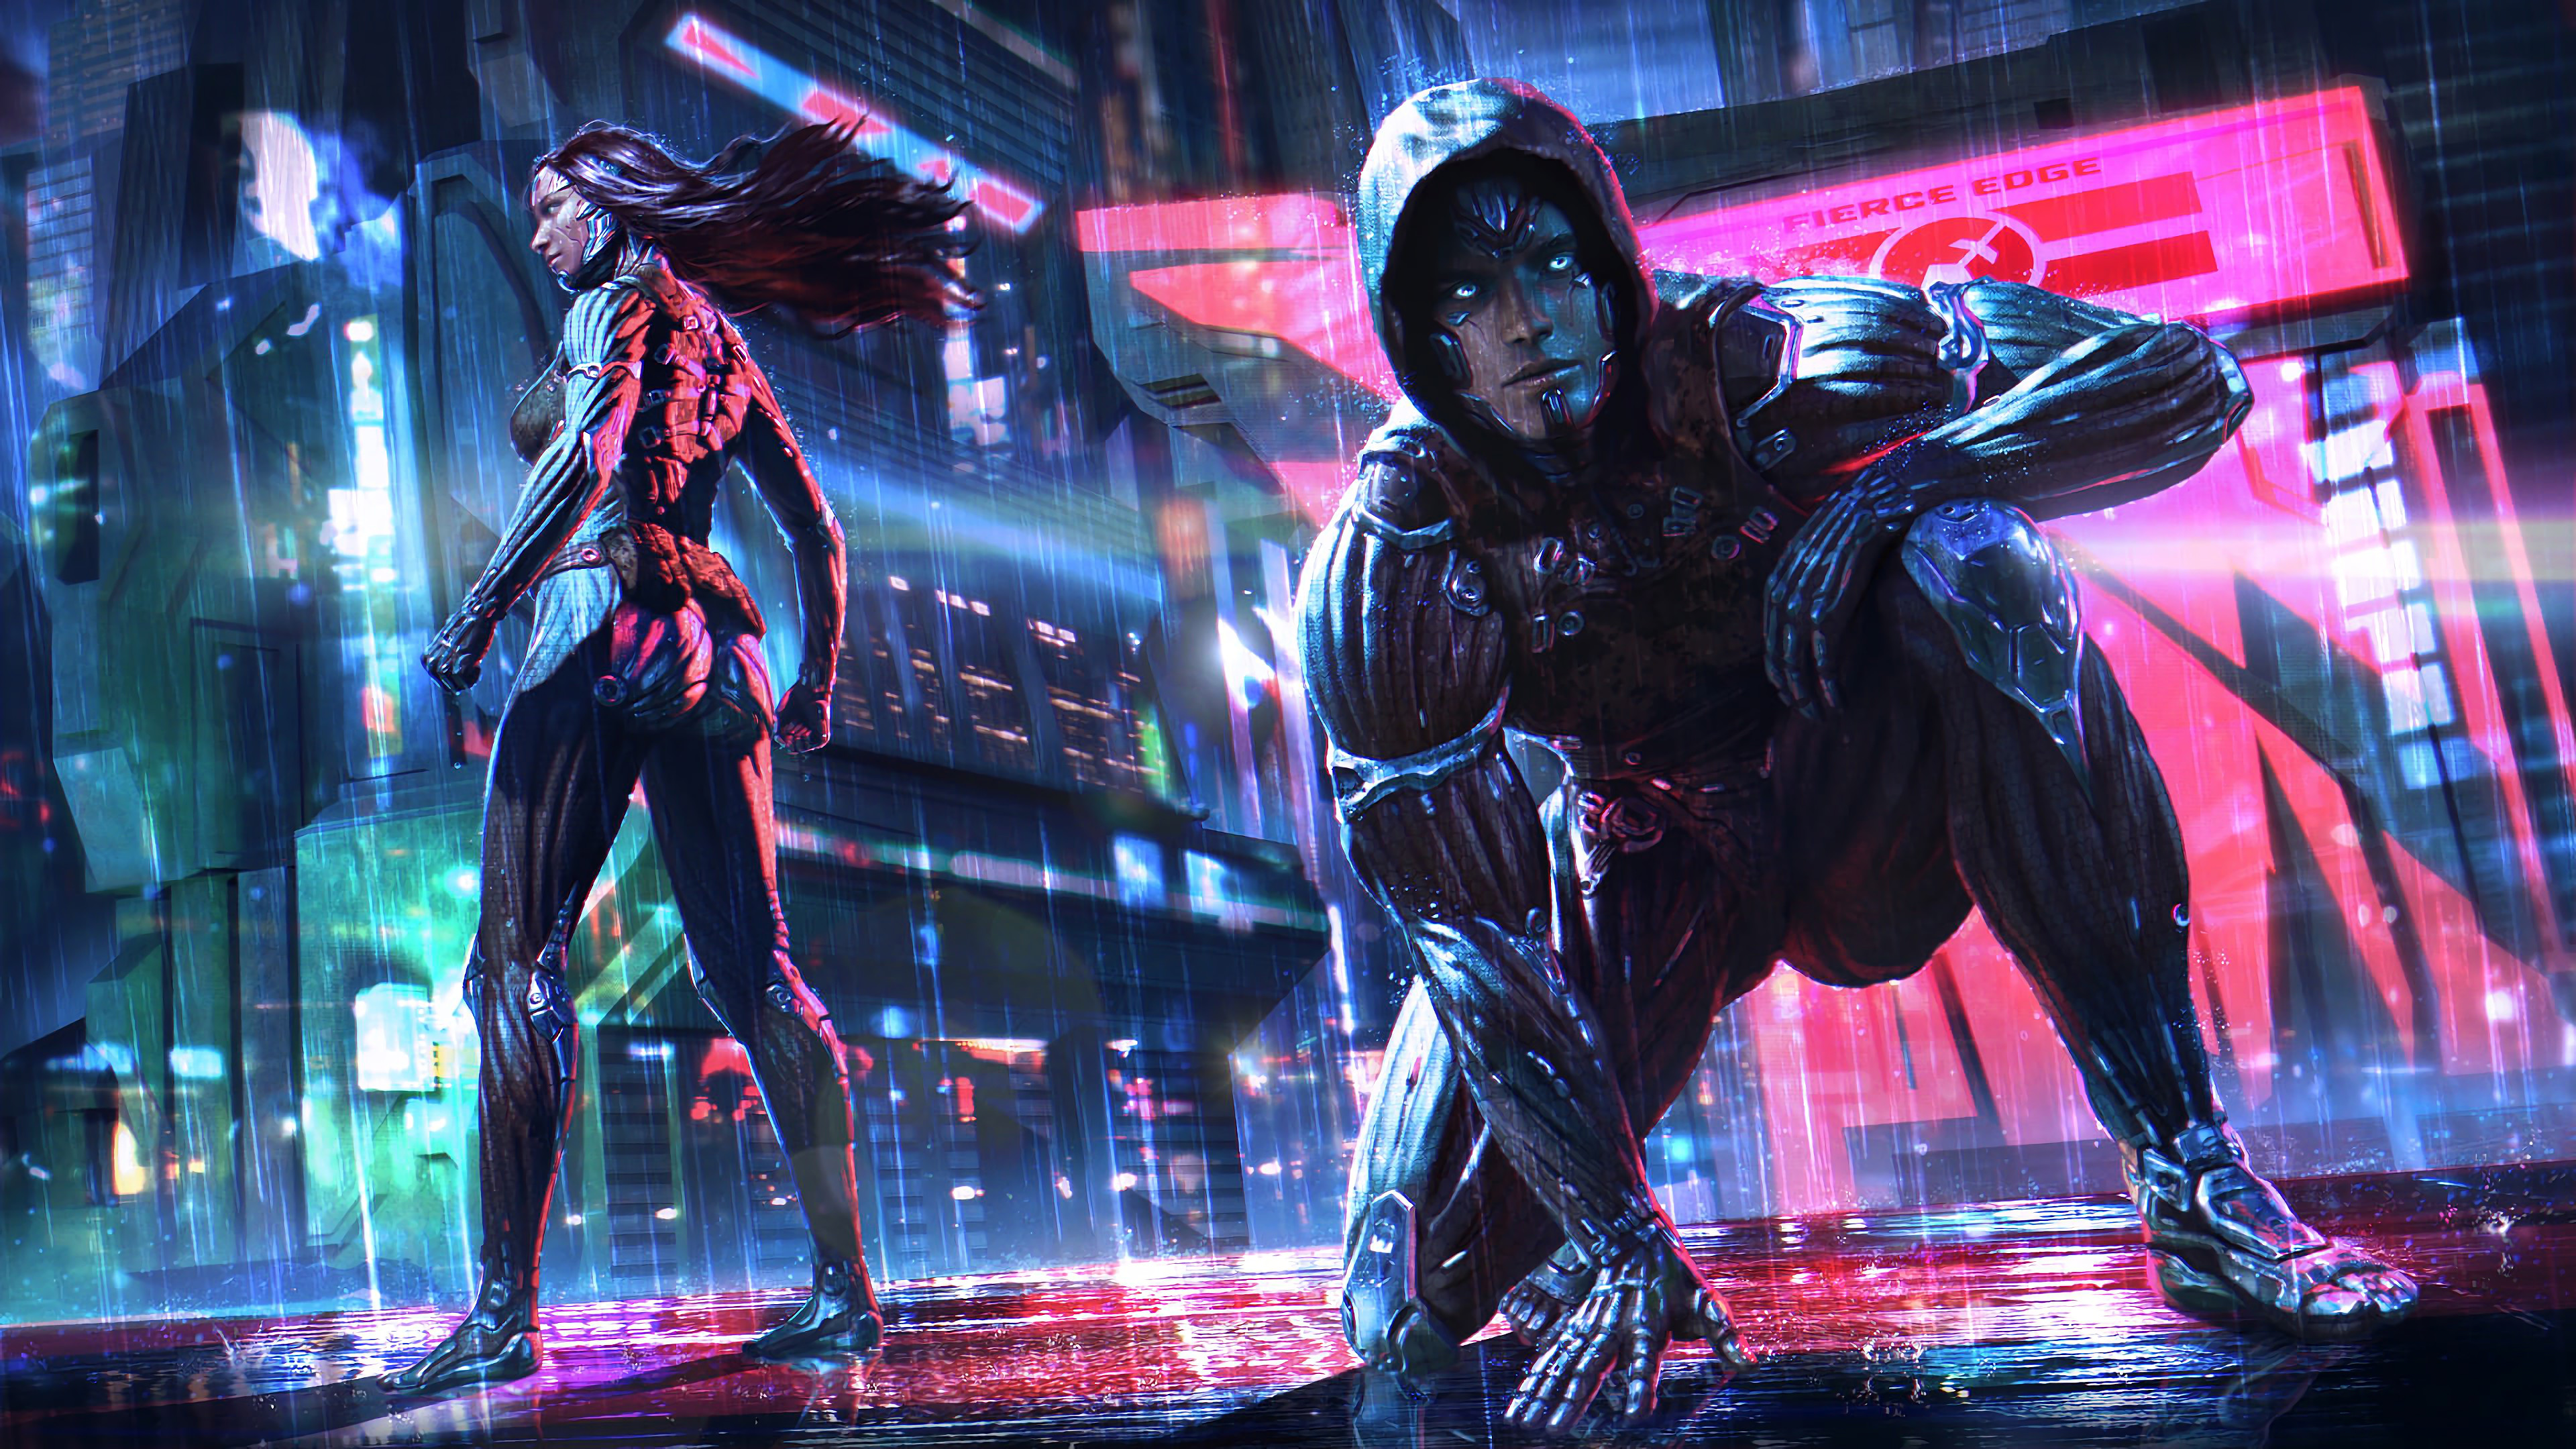 General 3840x2160 digital digital art artwork futuristic futuristic city futuristic armor robot robotic robotics neon neon lights lights cyborg architecture building cyber cyberpunk Dark Cyberpunk men women science fiction concept art environment cyber city tech technology cyan pink